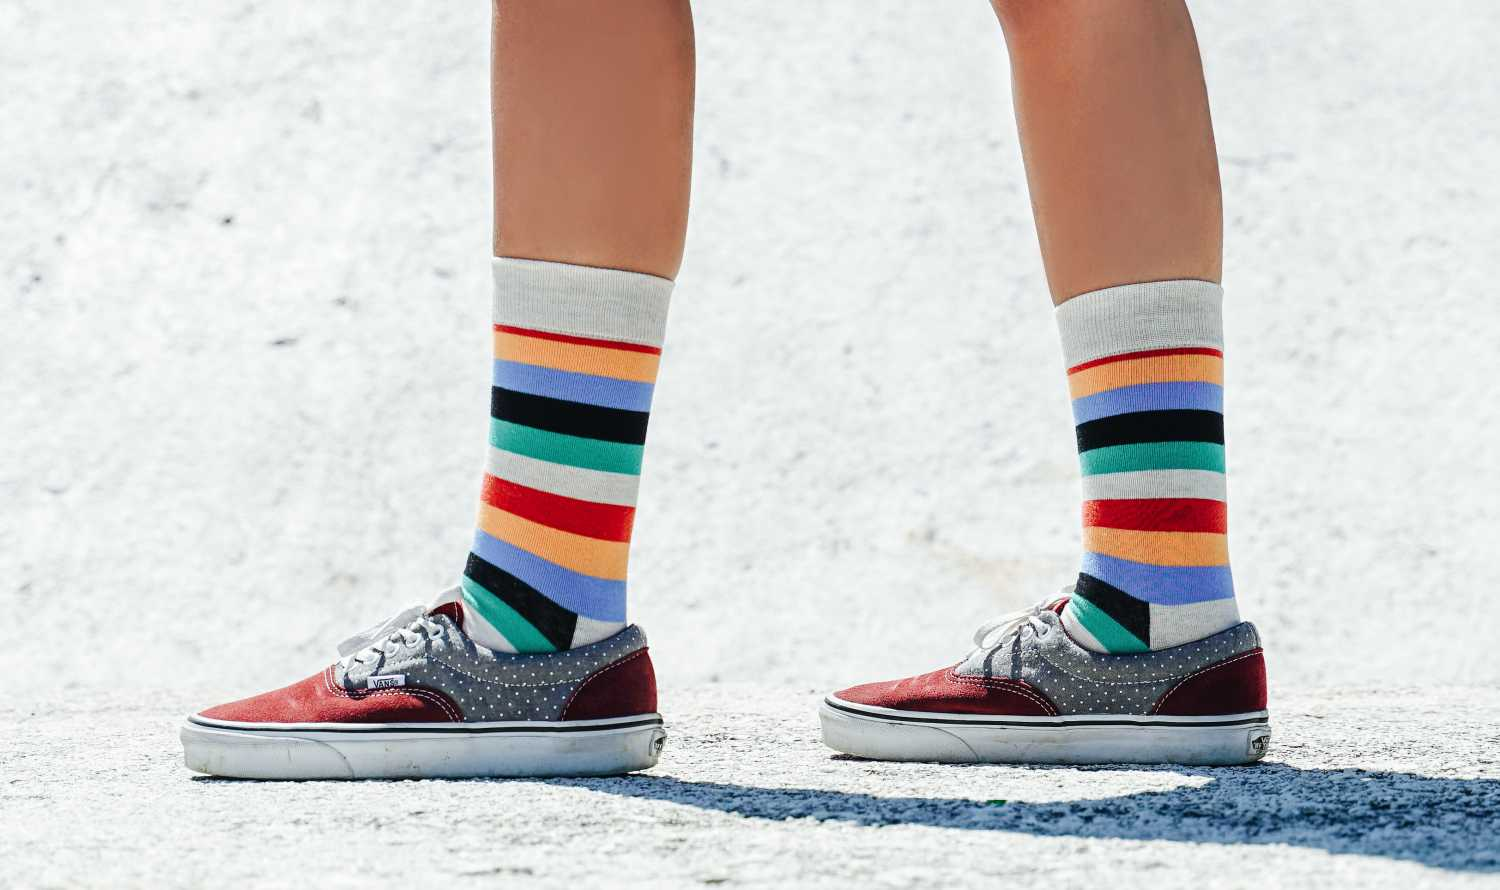 5 Ways to Wear Colorful Socks With Any Outfit